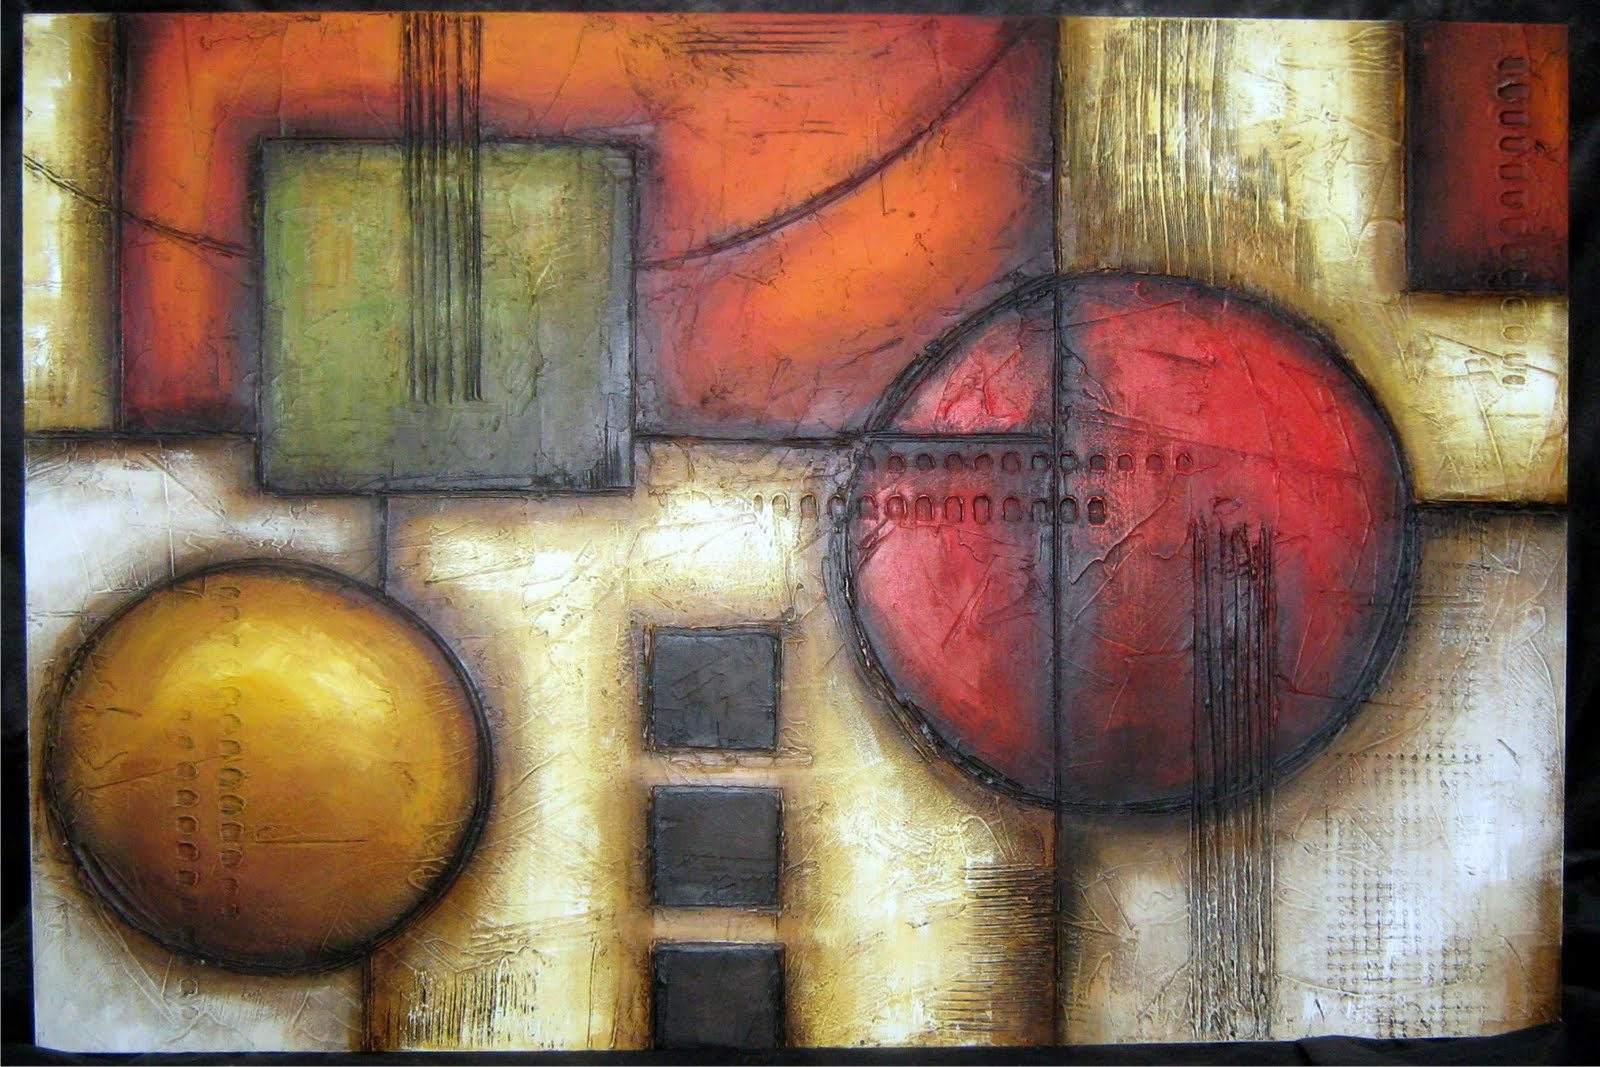 1000 images about cuadros abstractos on pinterest - Cuadros con texturas abstractos ...